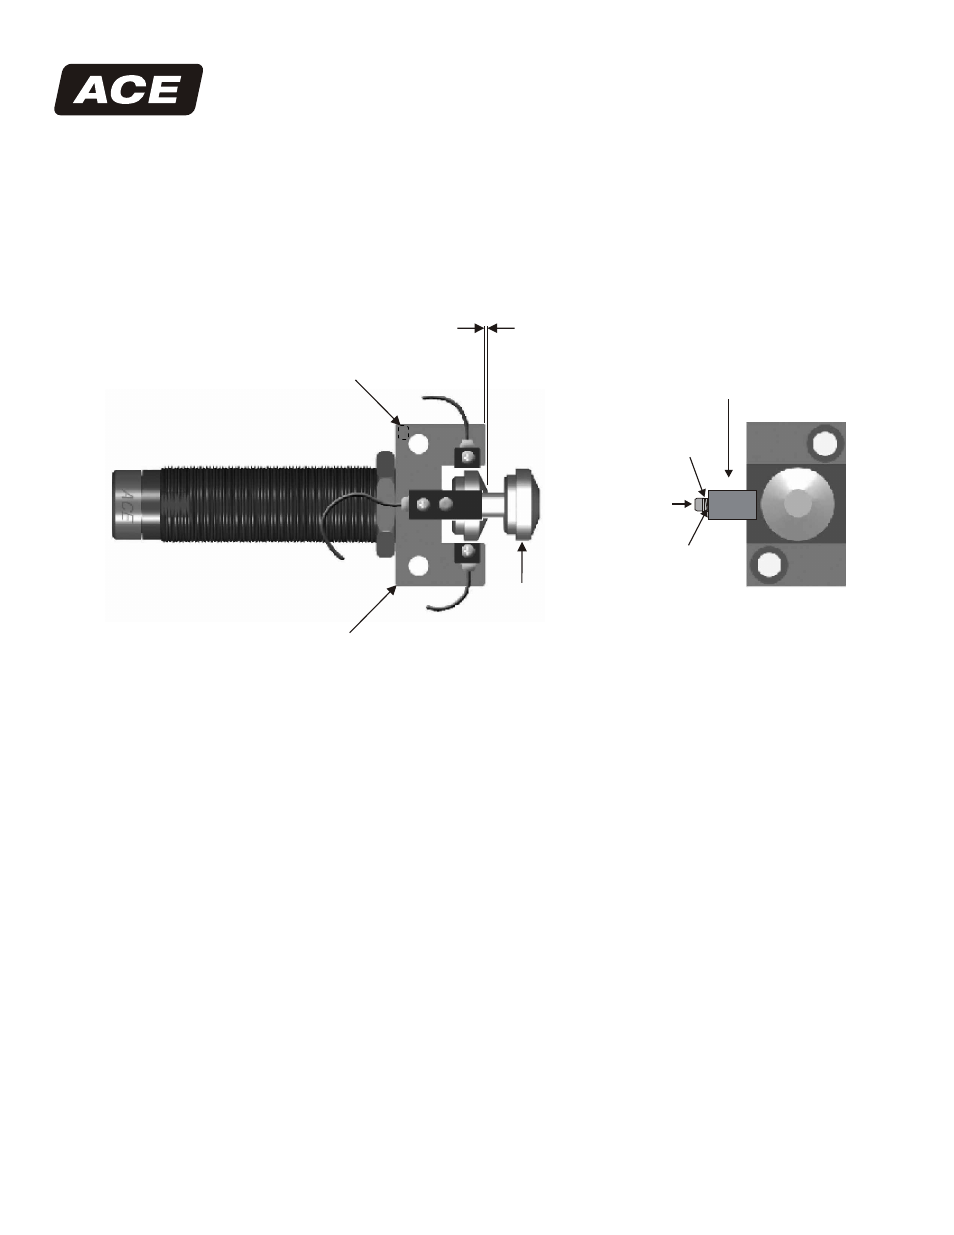 Ace Controls Mvc 900 User Manual 2 Pages Also For 600 Wire Proximity Sensor Wiring Diagram 225 Mc 150 Sc 925 650 300 190 Ma